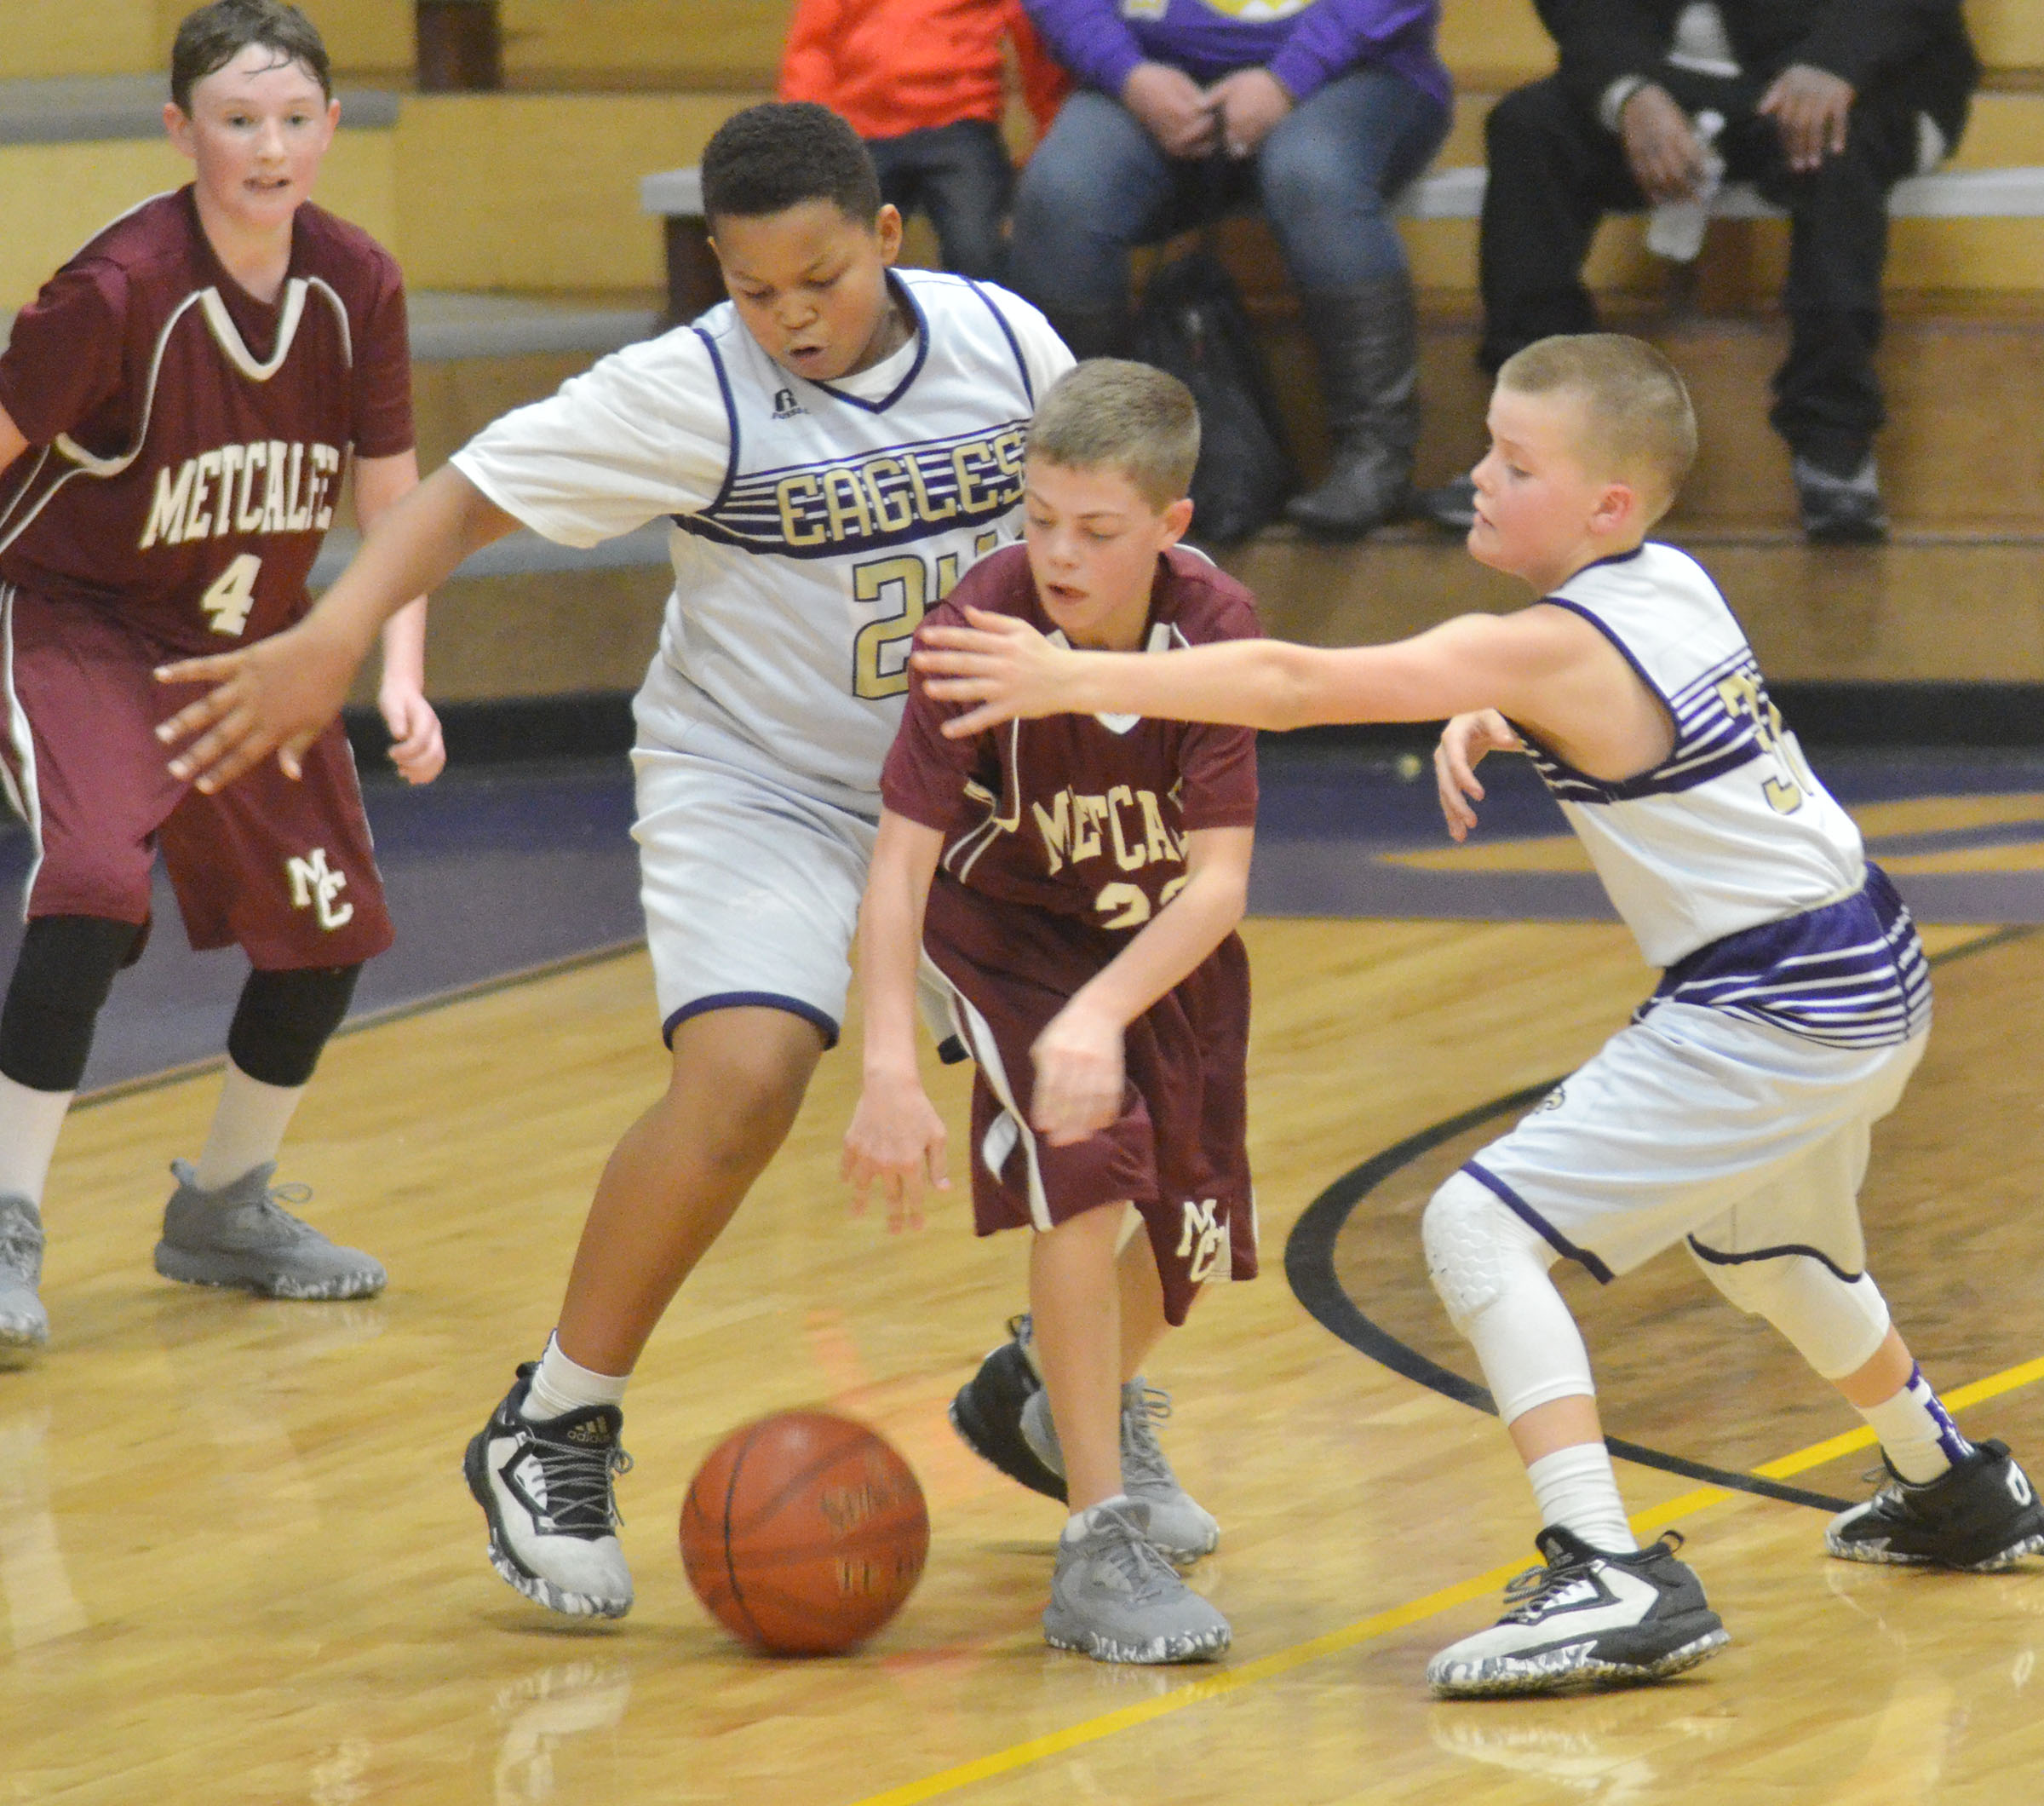 CMS sixth-graders Keondre Weathers, at left, and Konner Forbis battle for the ball.